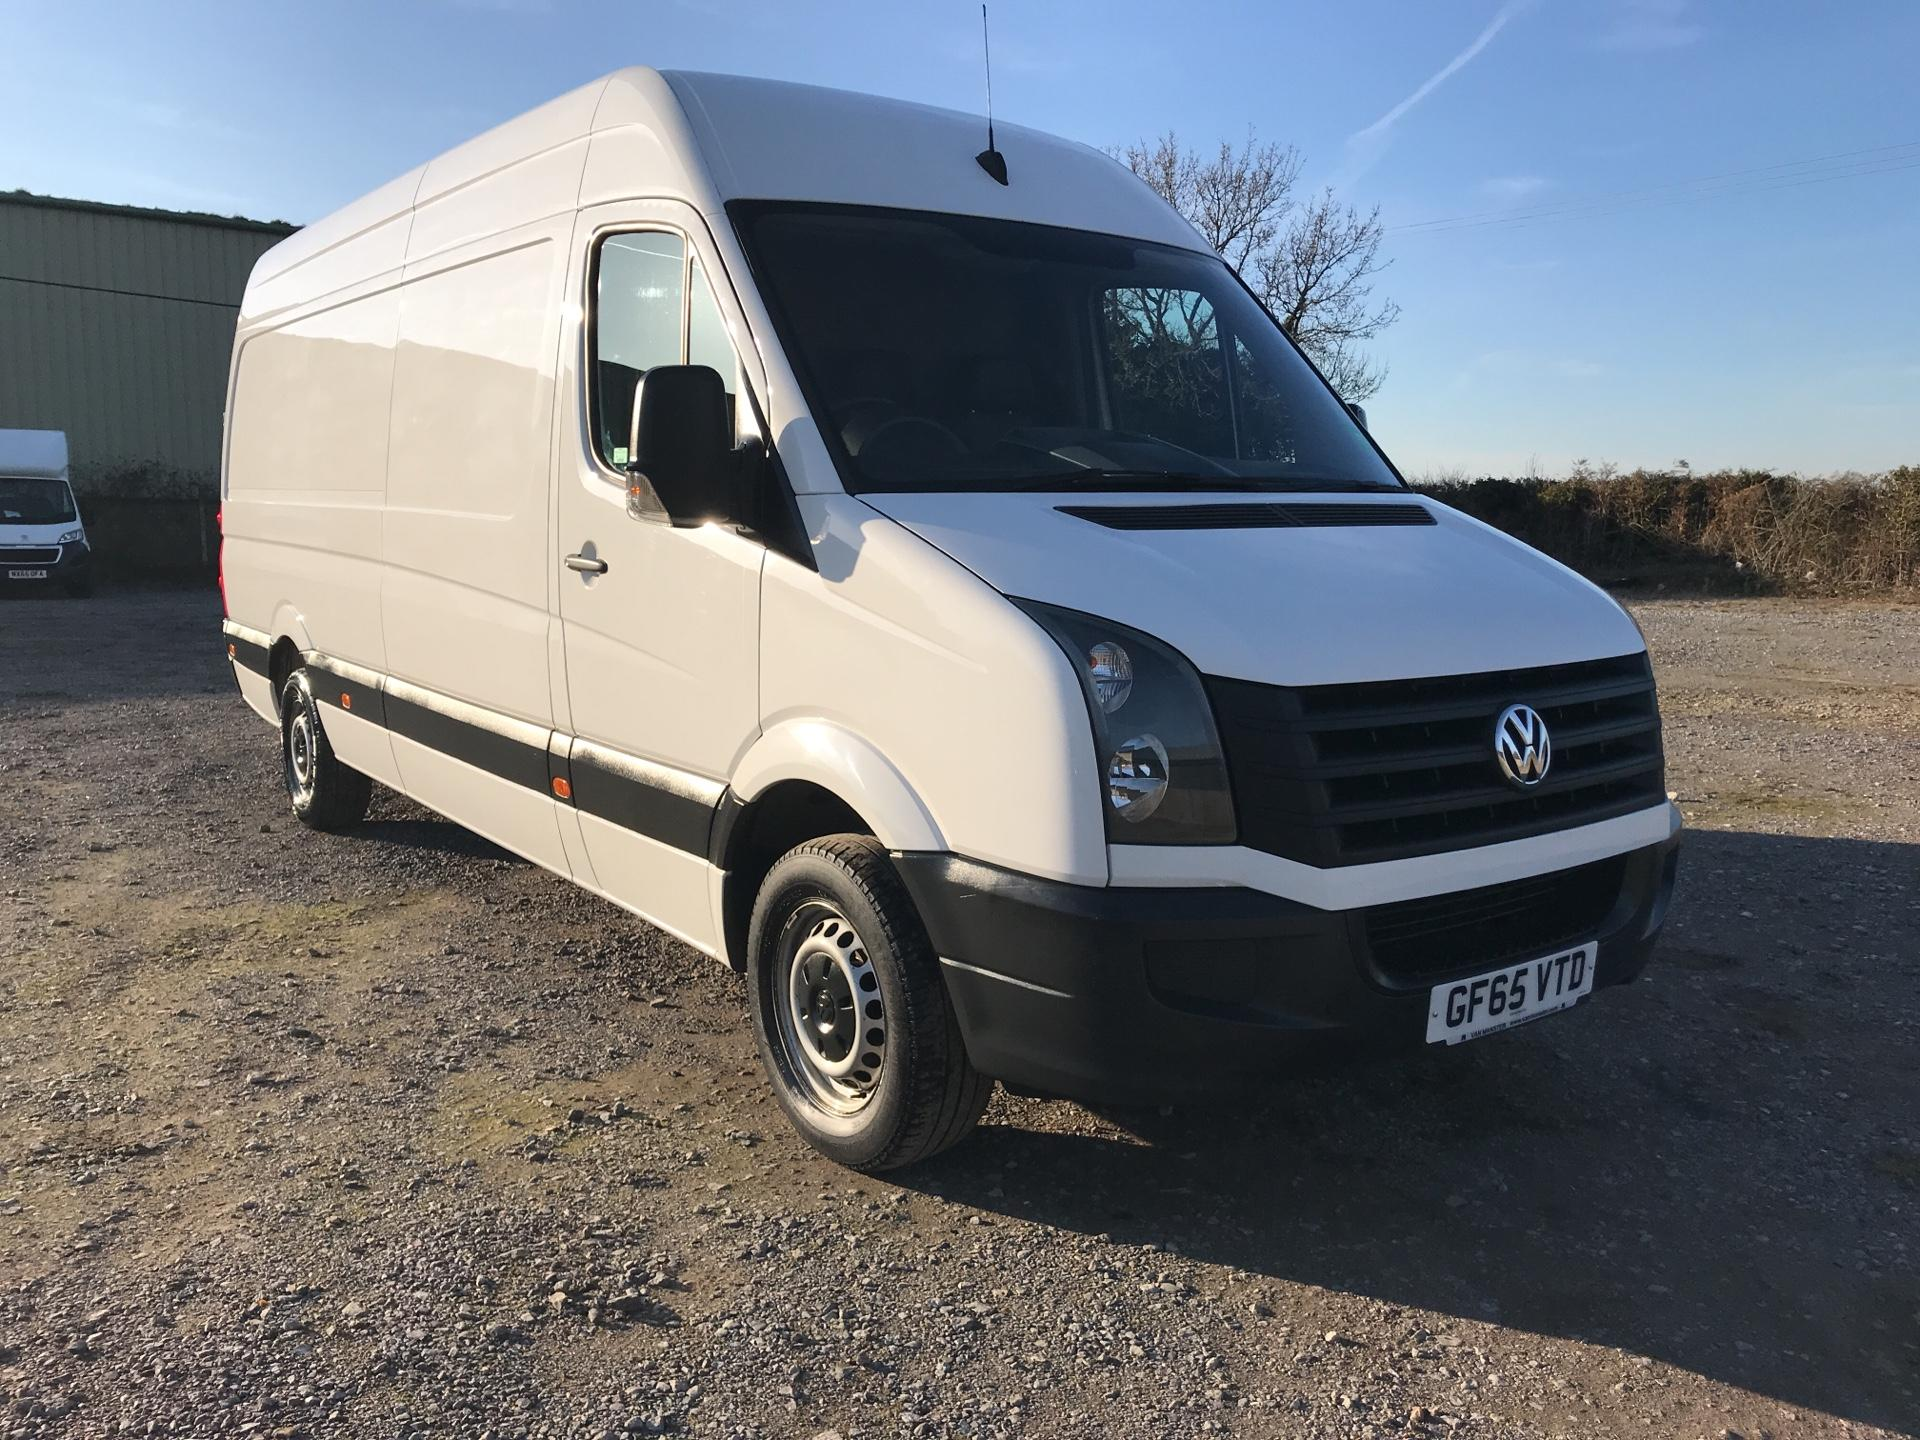 2015 Volkswagen Crafter CR35 LWB 2.0 136PS HIGH ROOF EURO 5 (GF65VTD)